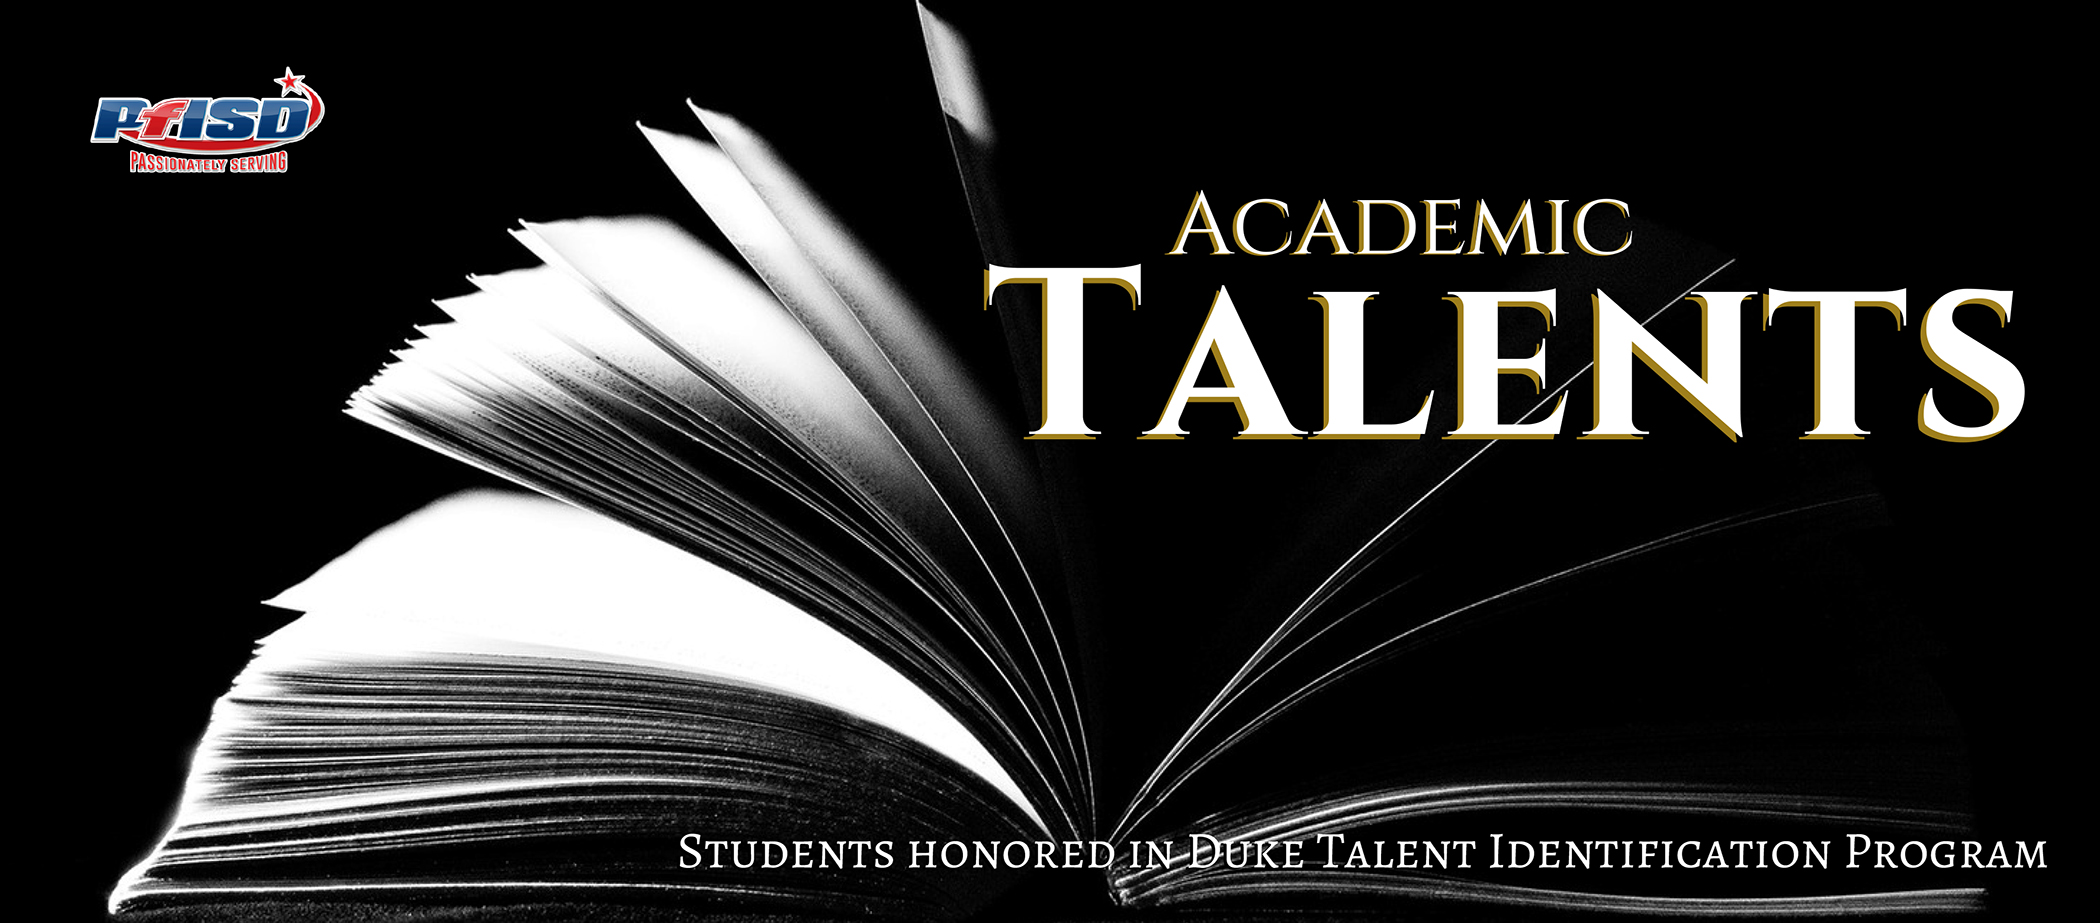 Students honored in Duke Talent Identi-fication Program